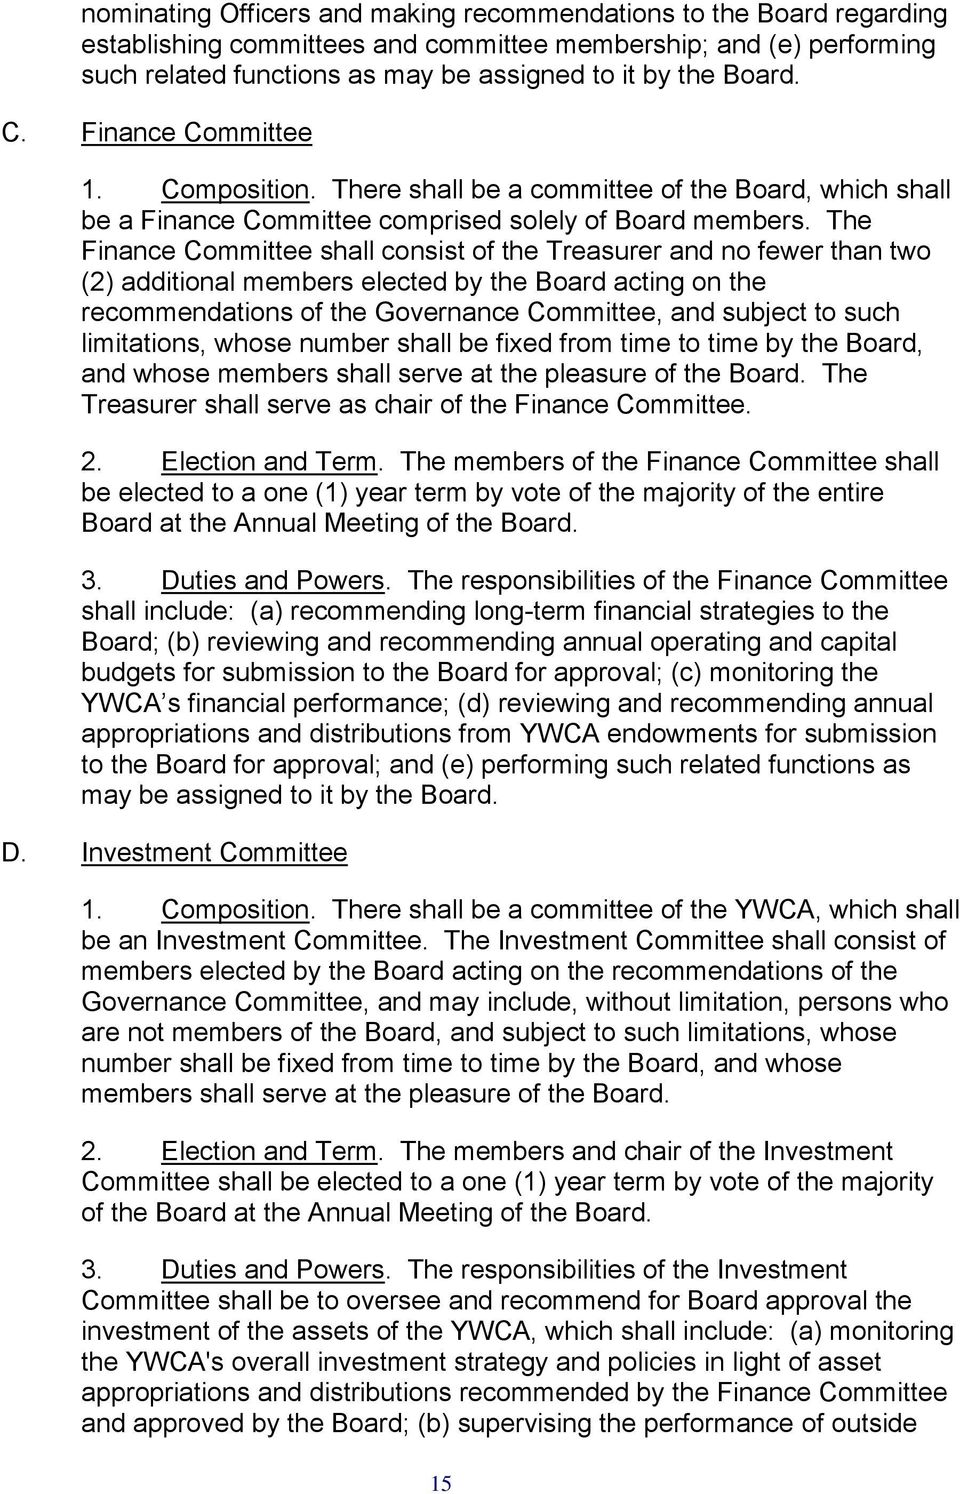 The Finance Committee shall consist of the Treasurer and no fewer than two (2) additional members elected by the Board acting on the recommendations of the Governance Committee, and subject to such